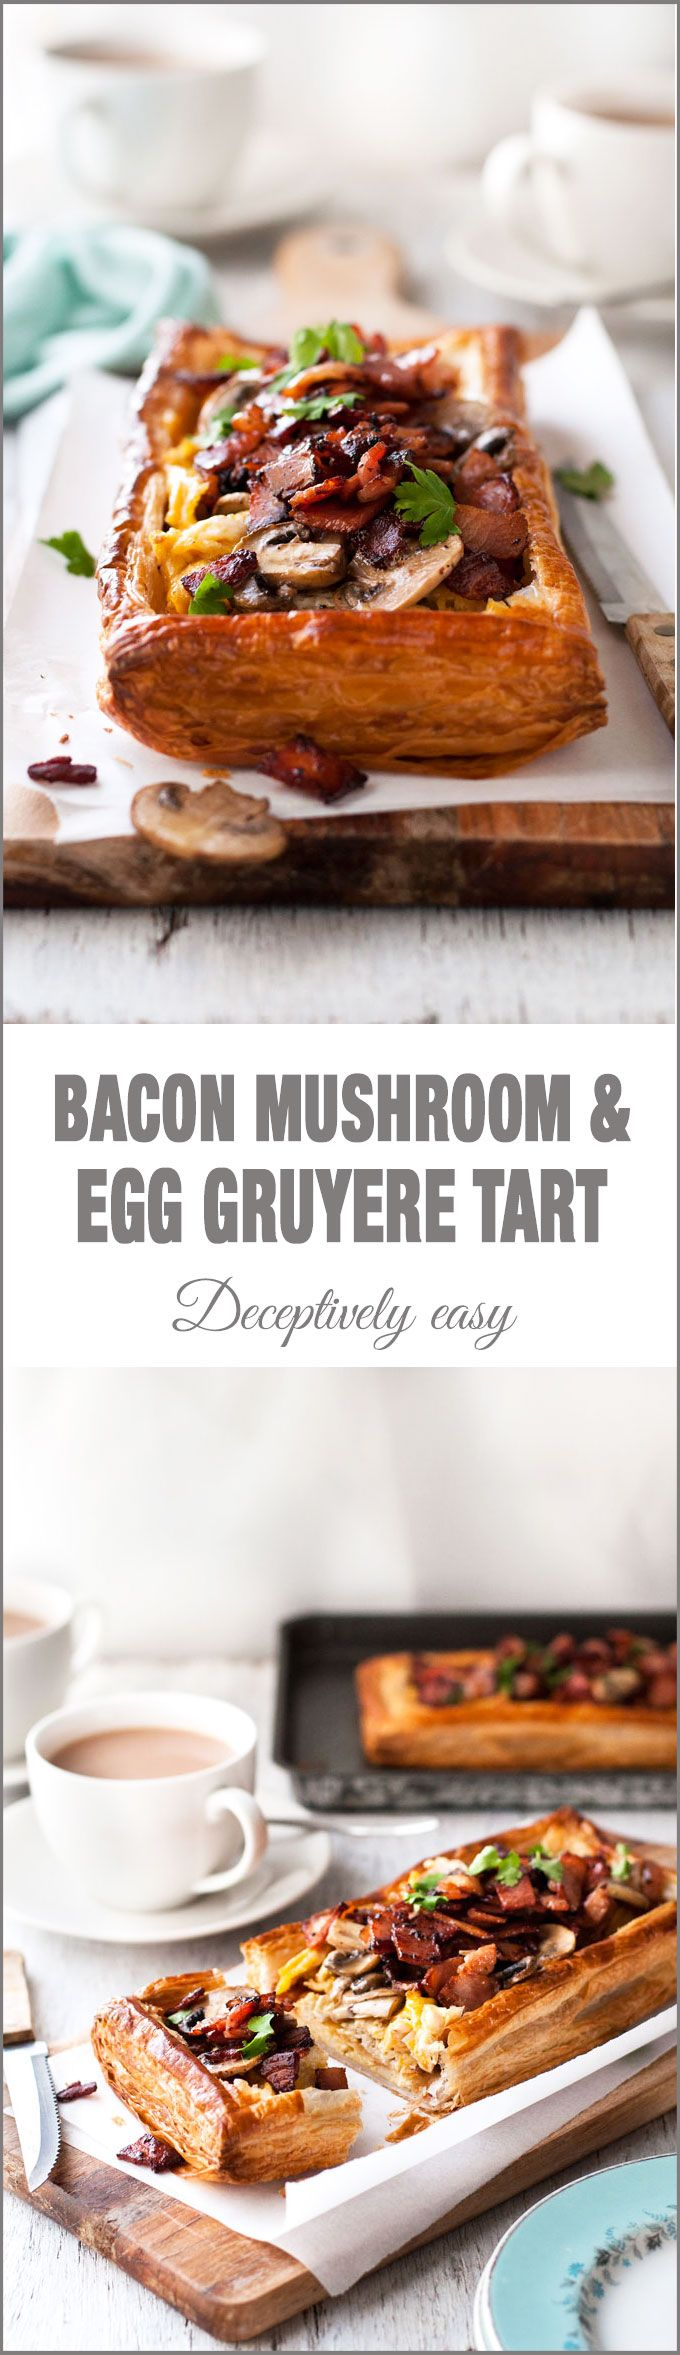 Bacon Mushroom & Egg Tart with Gruyere Cheese - looks fancy, but simple to make using puff pastry!